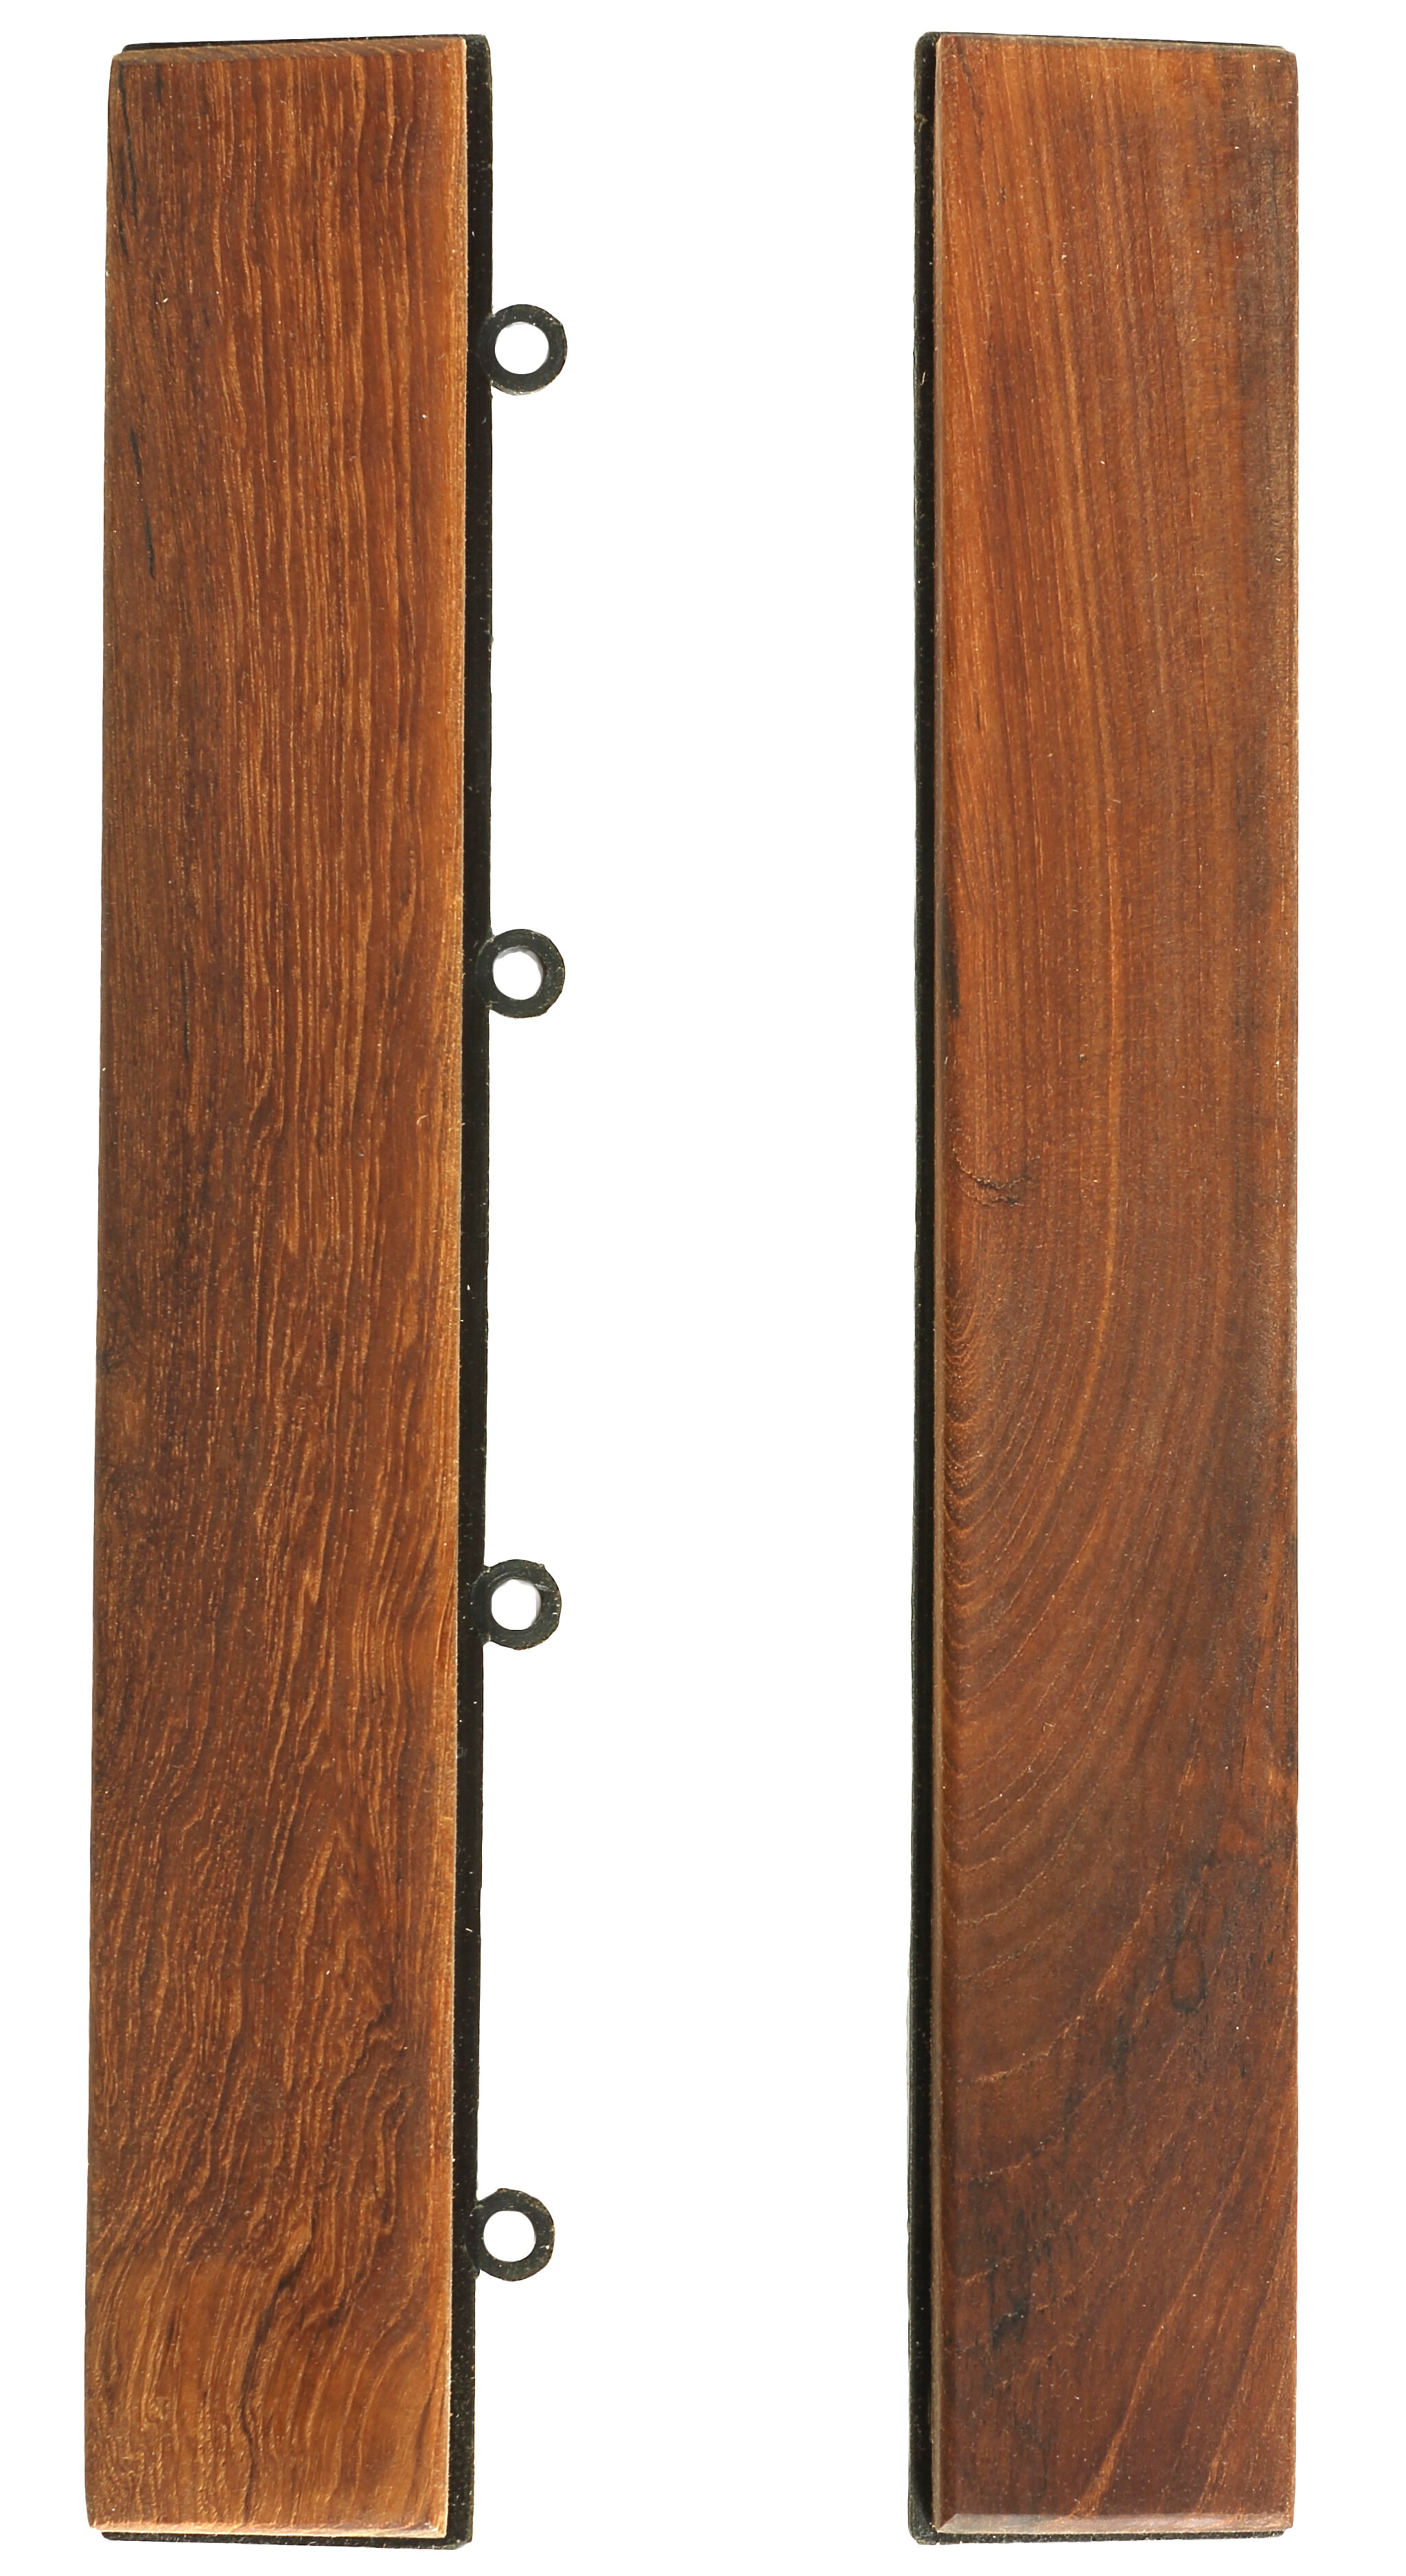 Baredecor Ez Floor 1 X 12 End Tile Trim In Teak Reviews Wayfair